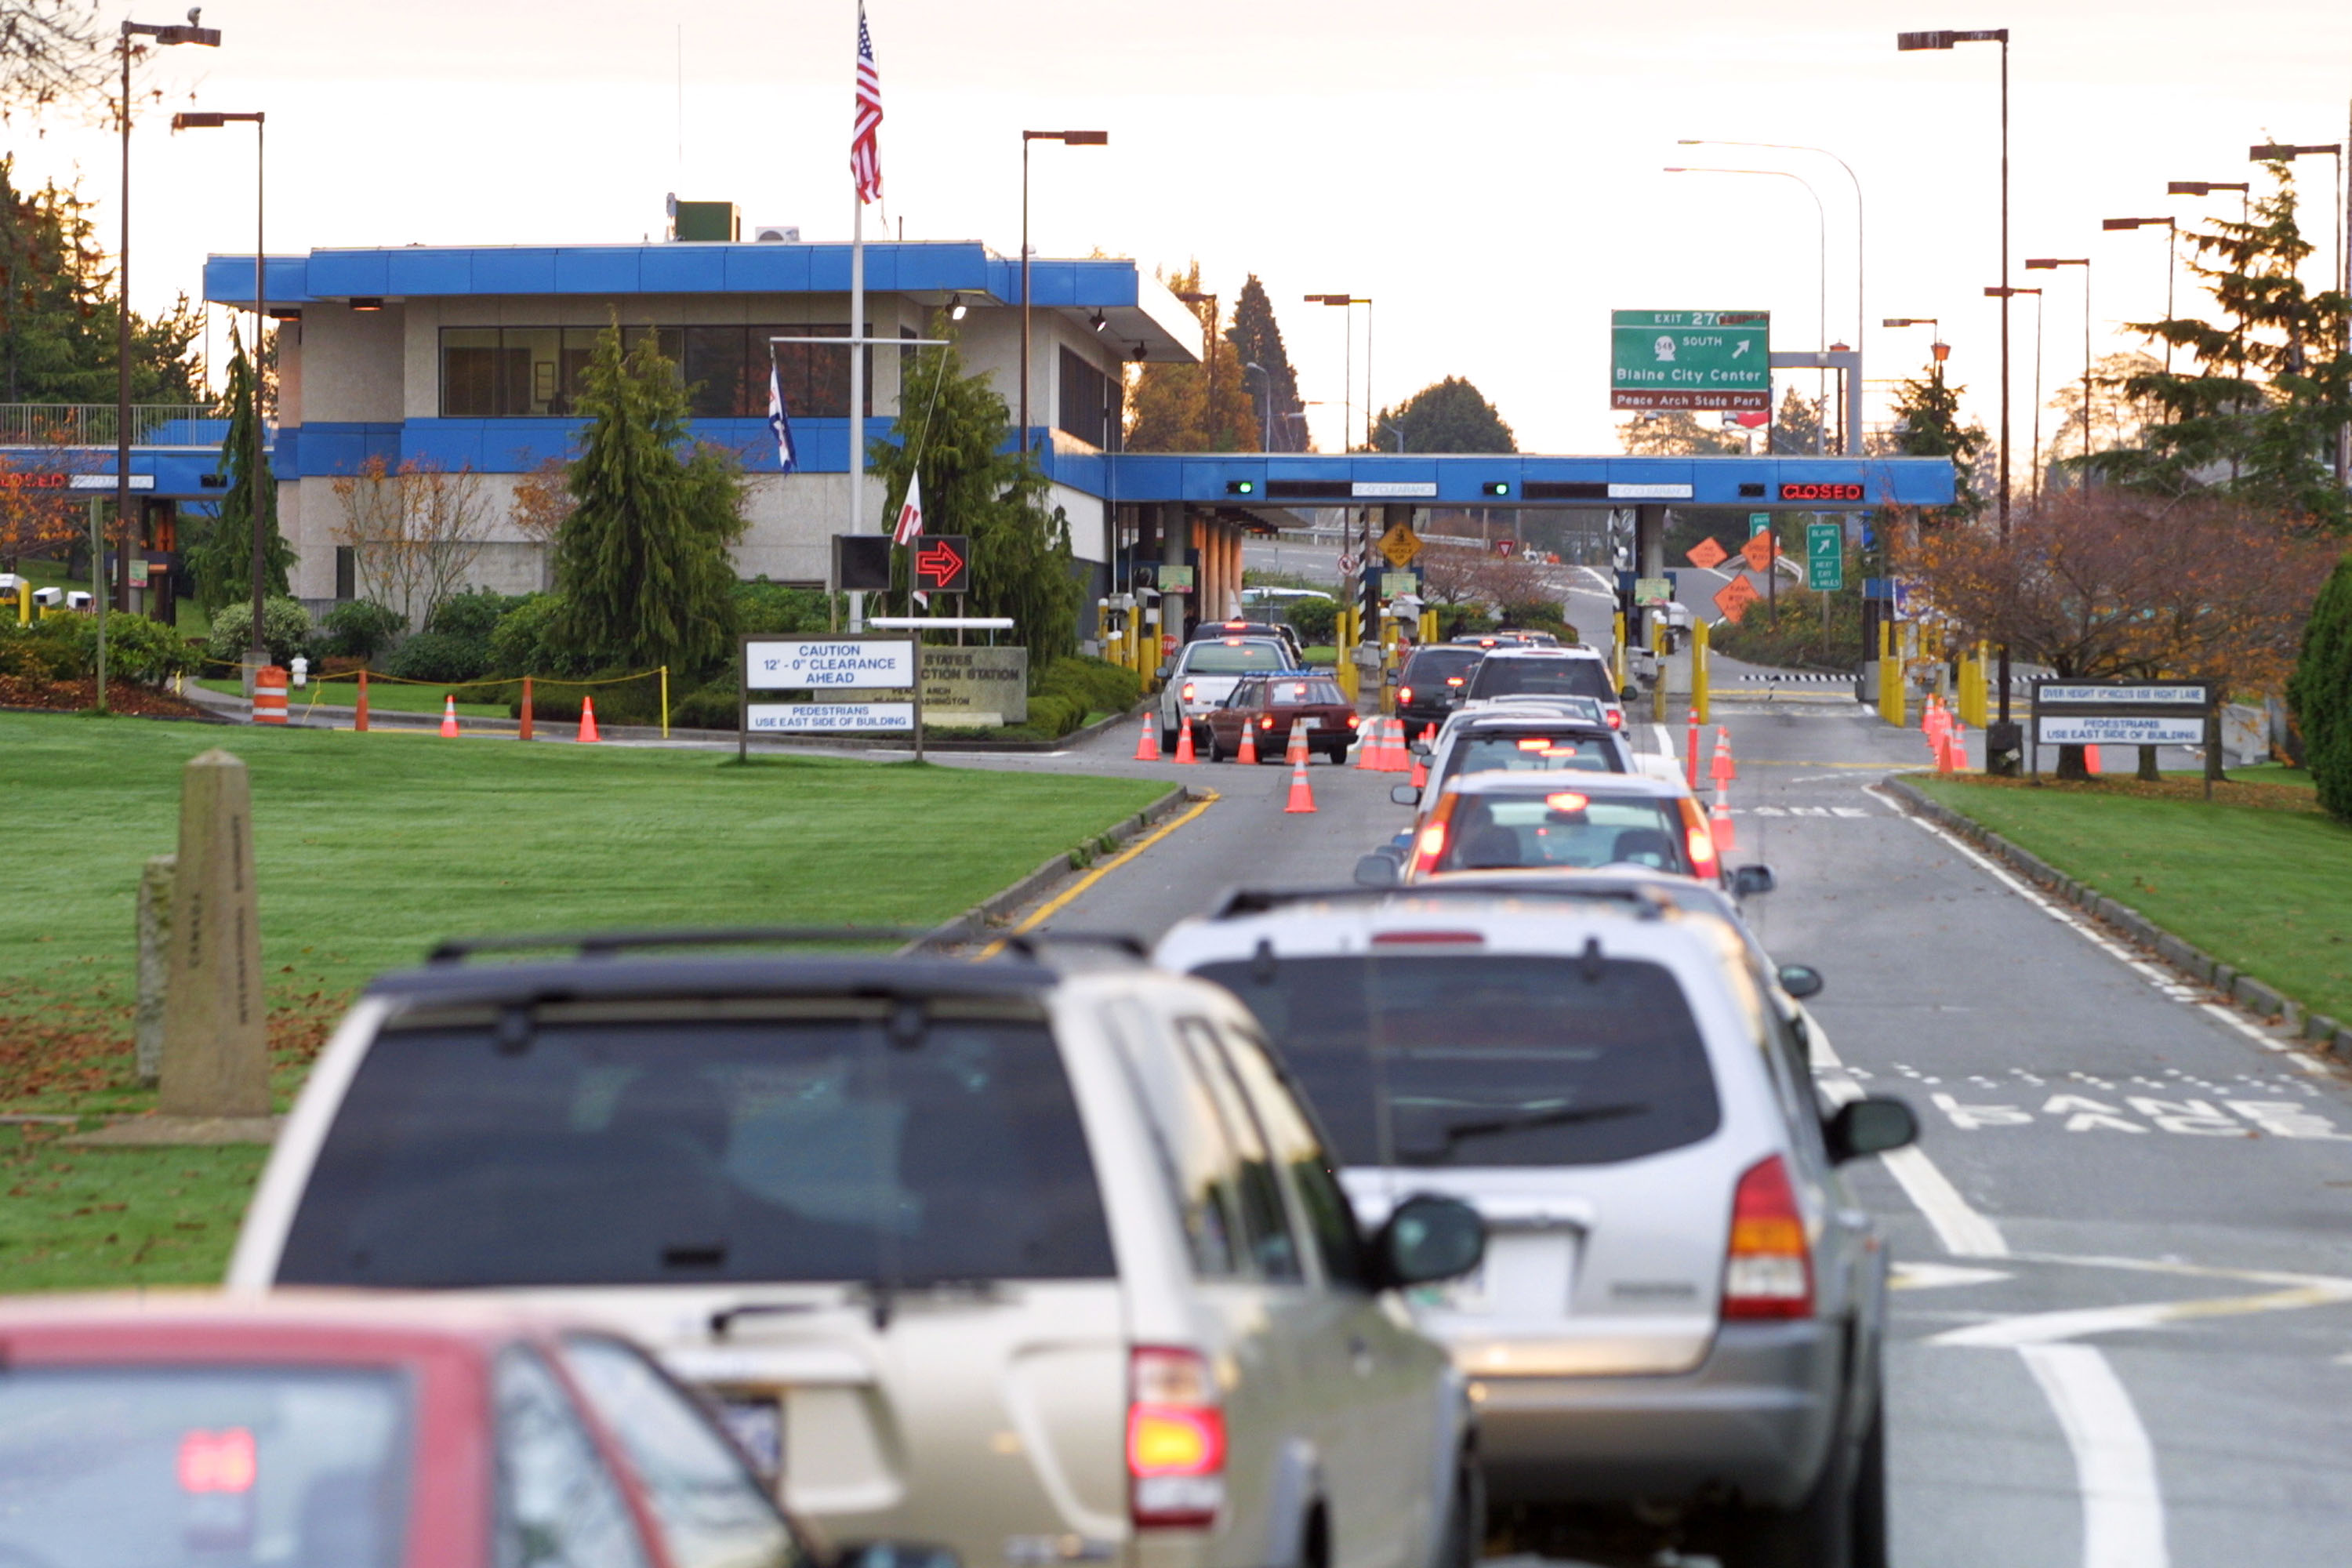 Vehicles line up to enter the United States at the border crossing between Blaine, Washington and White Rock, British Columbia